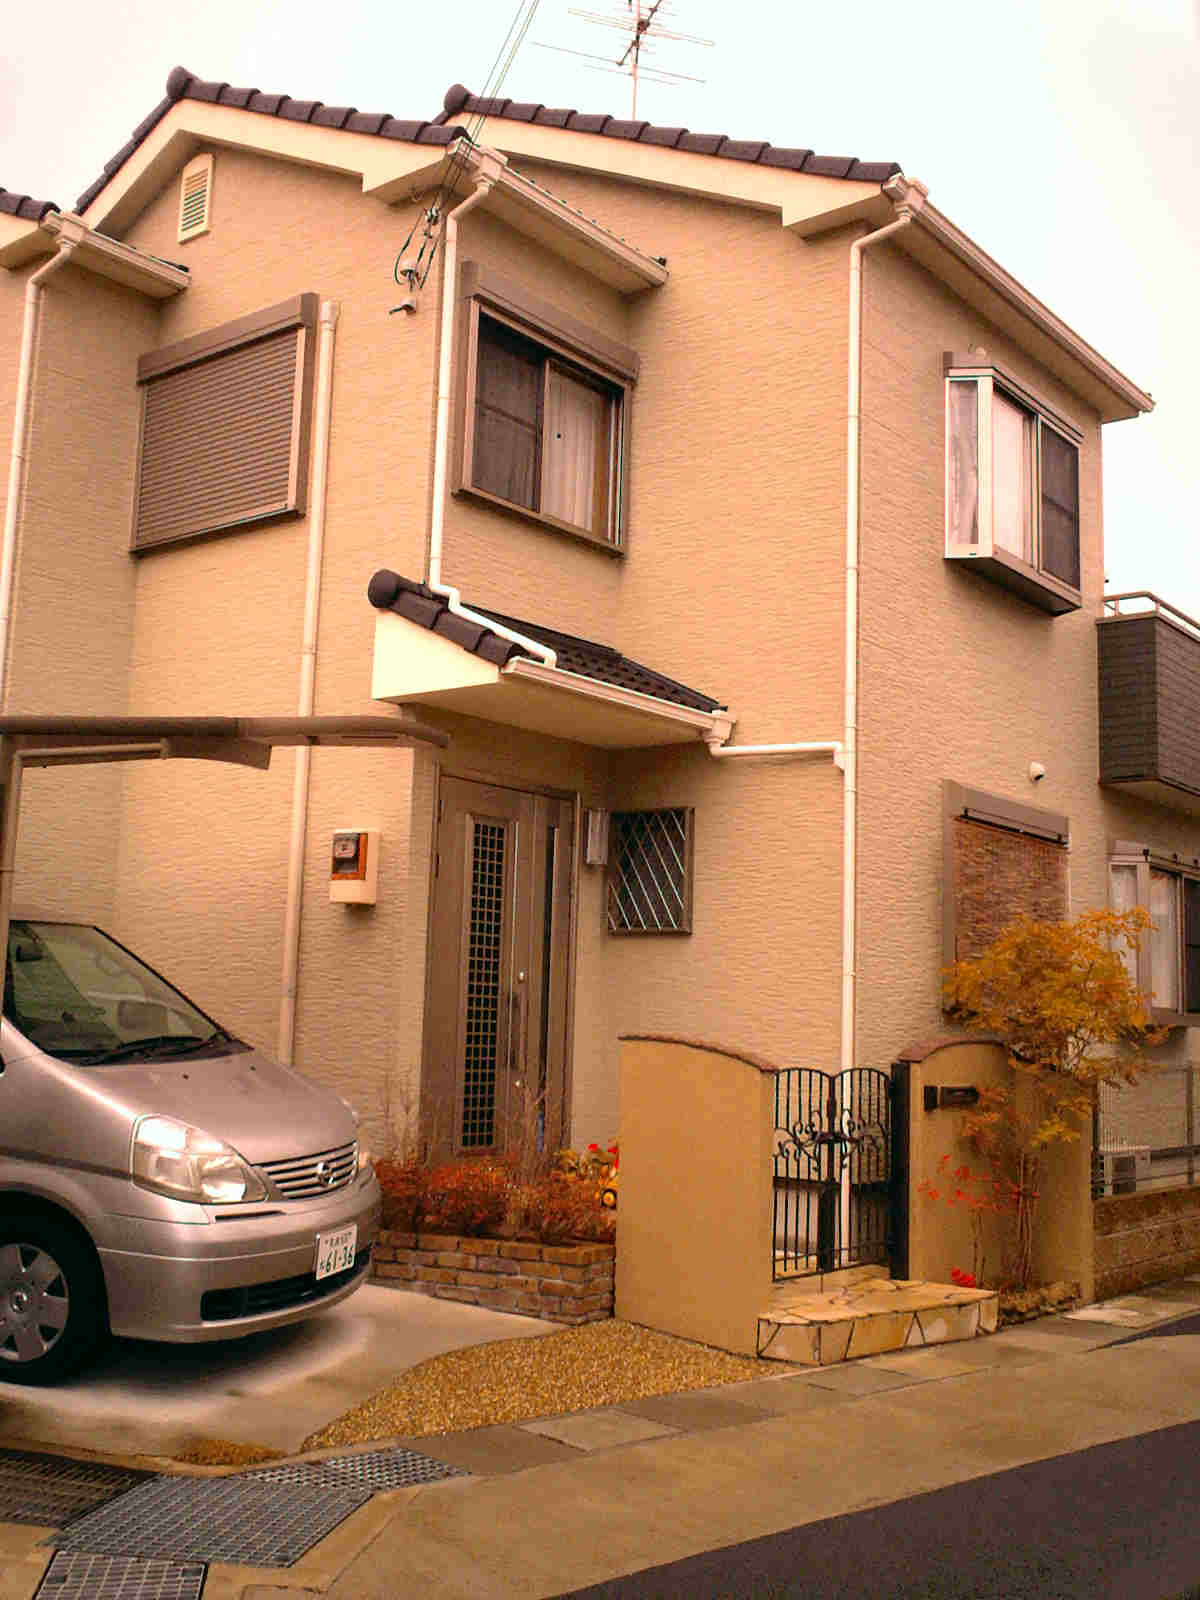 2009 memories relived in japan printing in korea for Japanese minimalist small house design